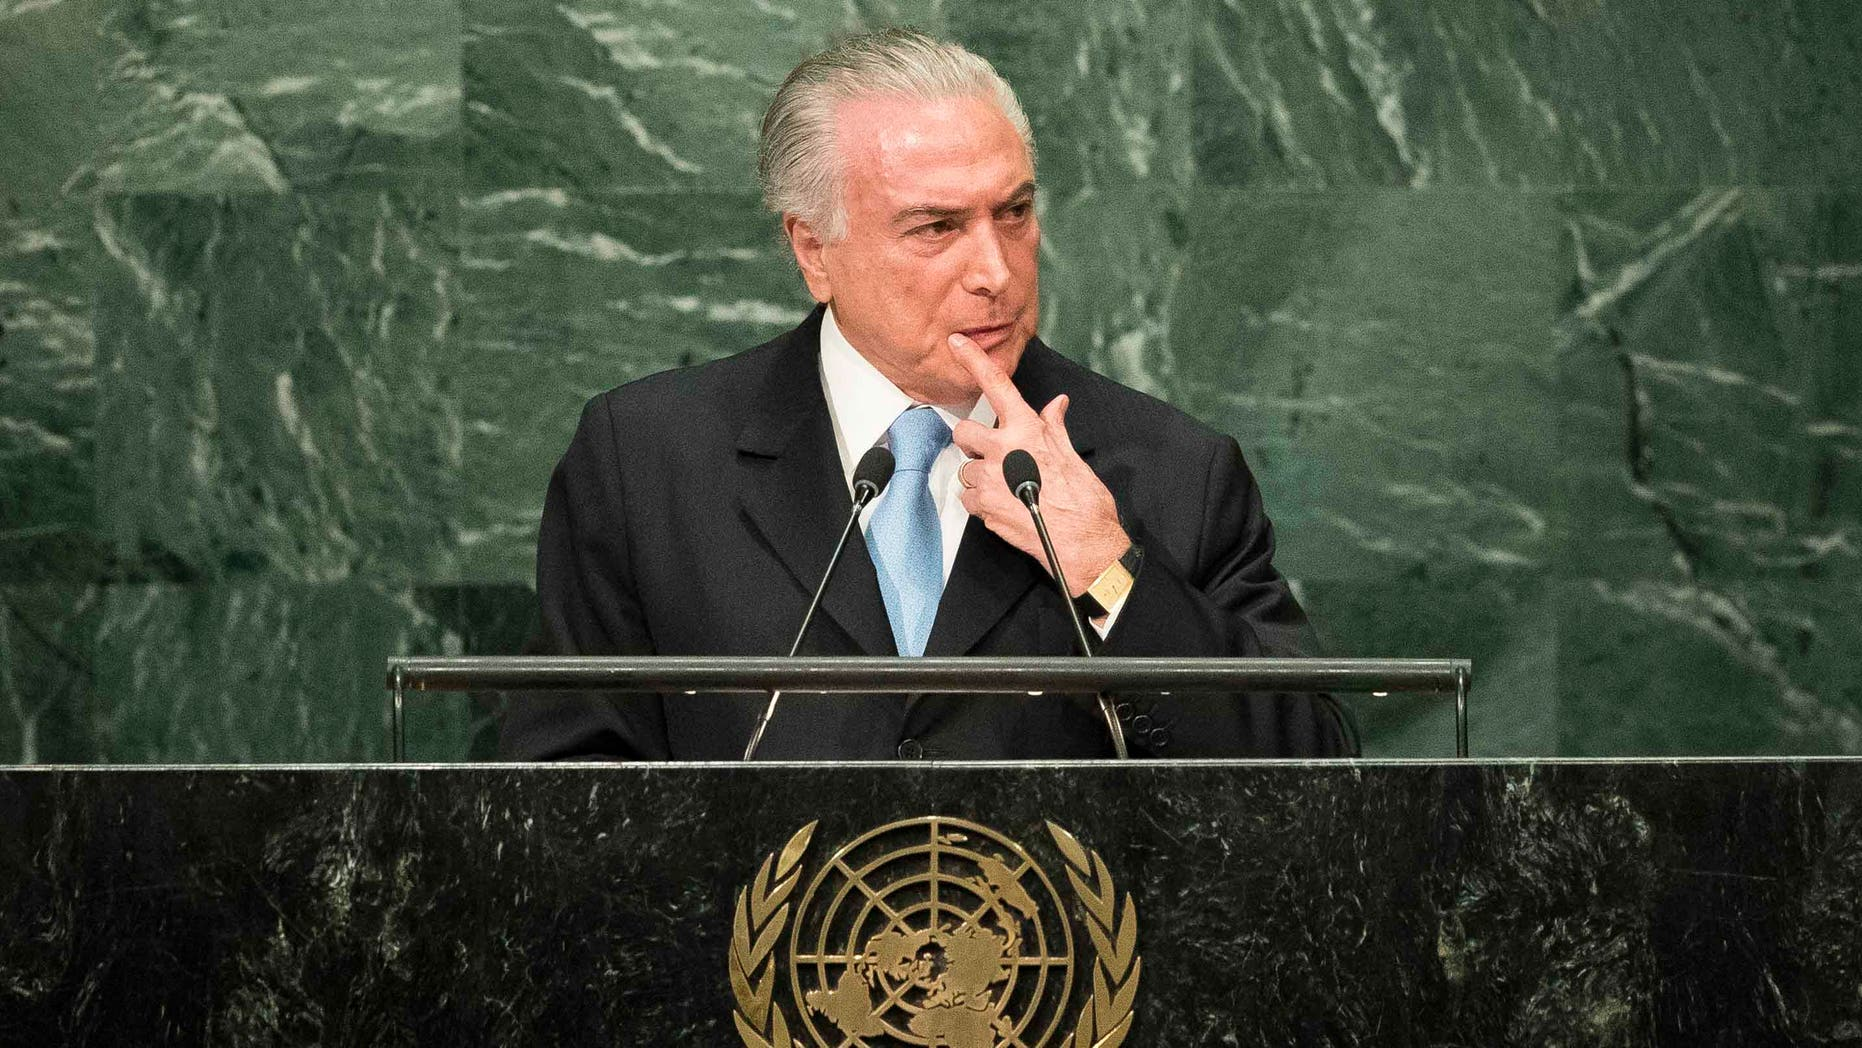 NEW YORK, NEW YORK - SEPTEMBER 20: President of Brazil Michel Temer addresses the United Nations General Assembly at UN headquarters, September 20, 2016 in New York City. According to the UN Secretary-General Ban ki-Moon, the most pressing matter to be discussed at the General Assembly is the world's refugee crisis. (Photo by Drew Angerer/Getty Images)